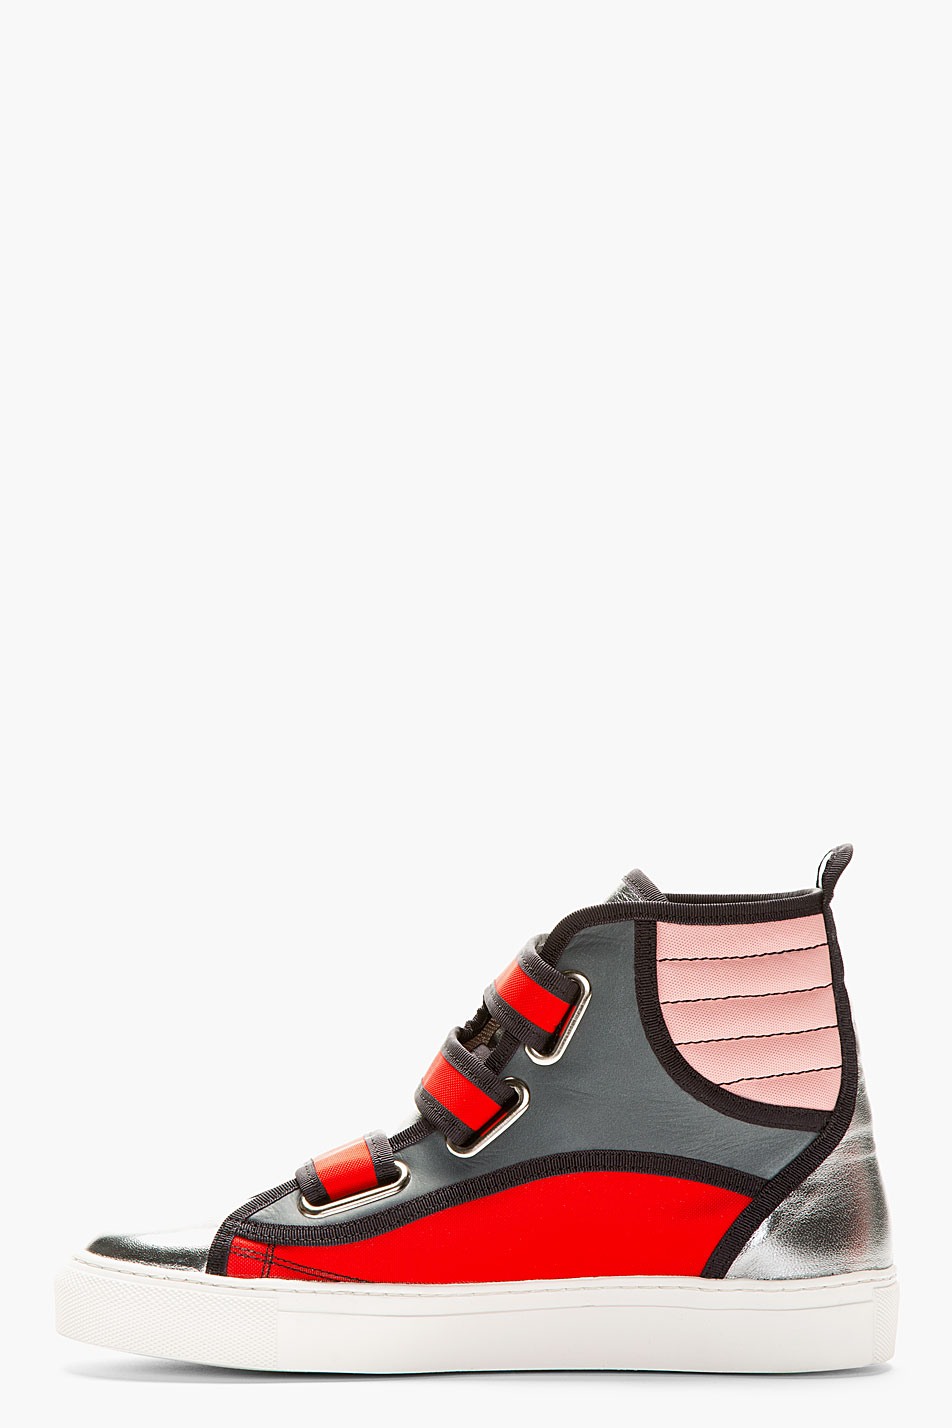 Lyst Raf Simons Red And Grey High Top Sneakers In Red